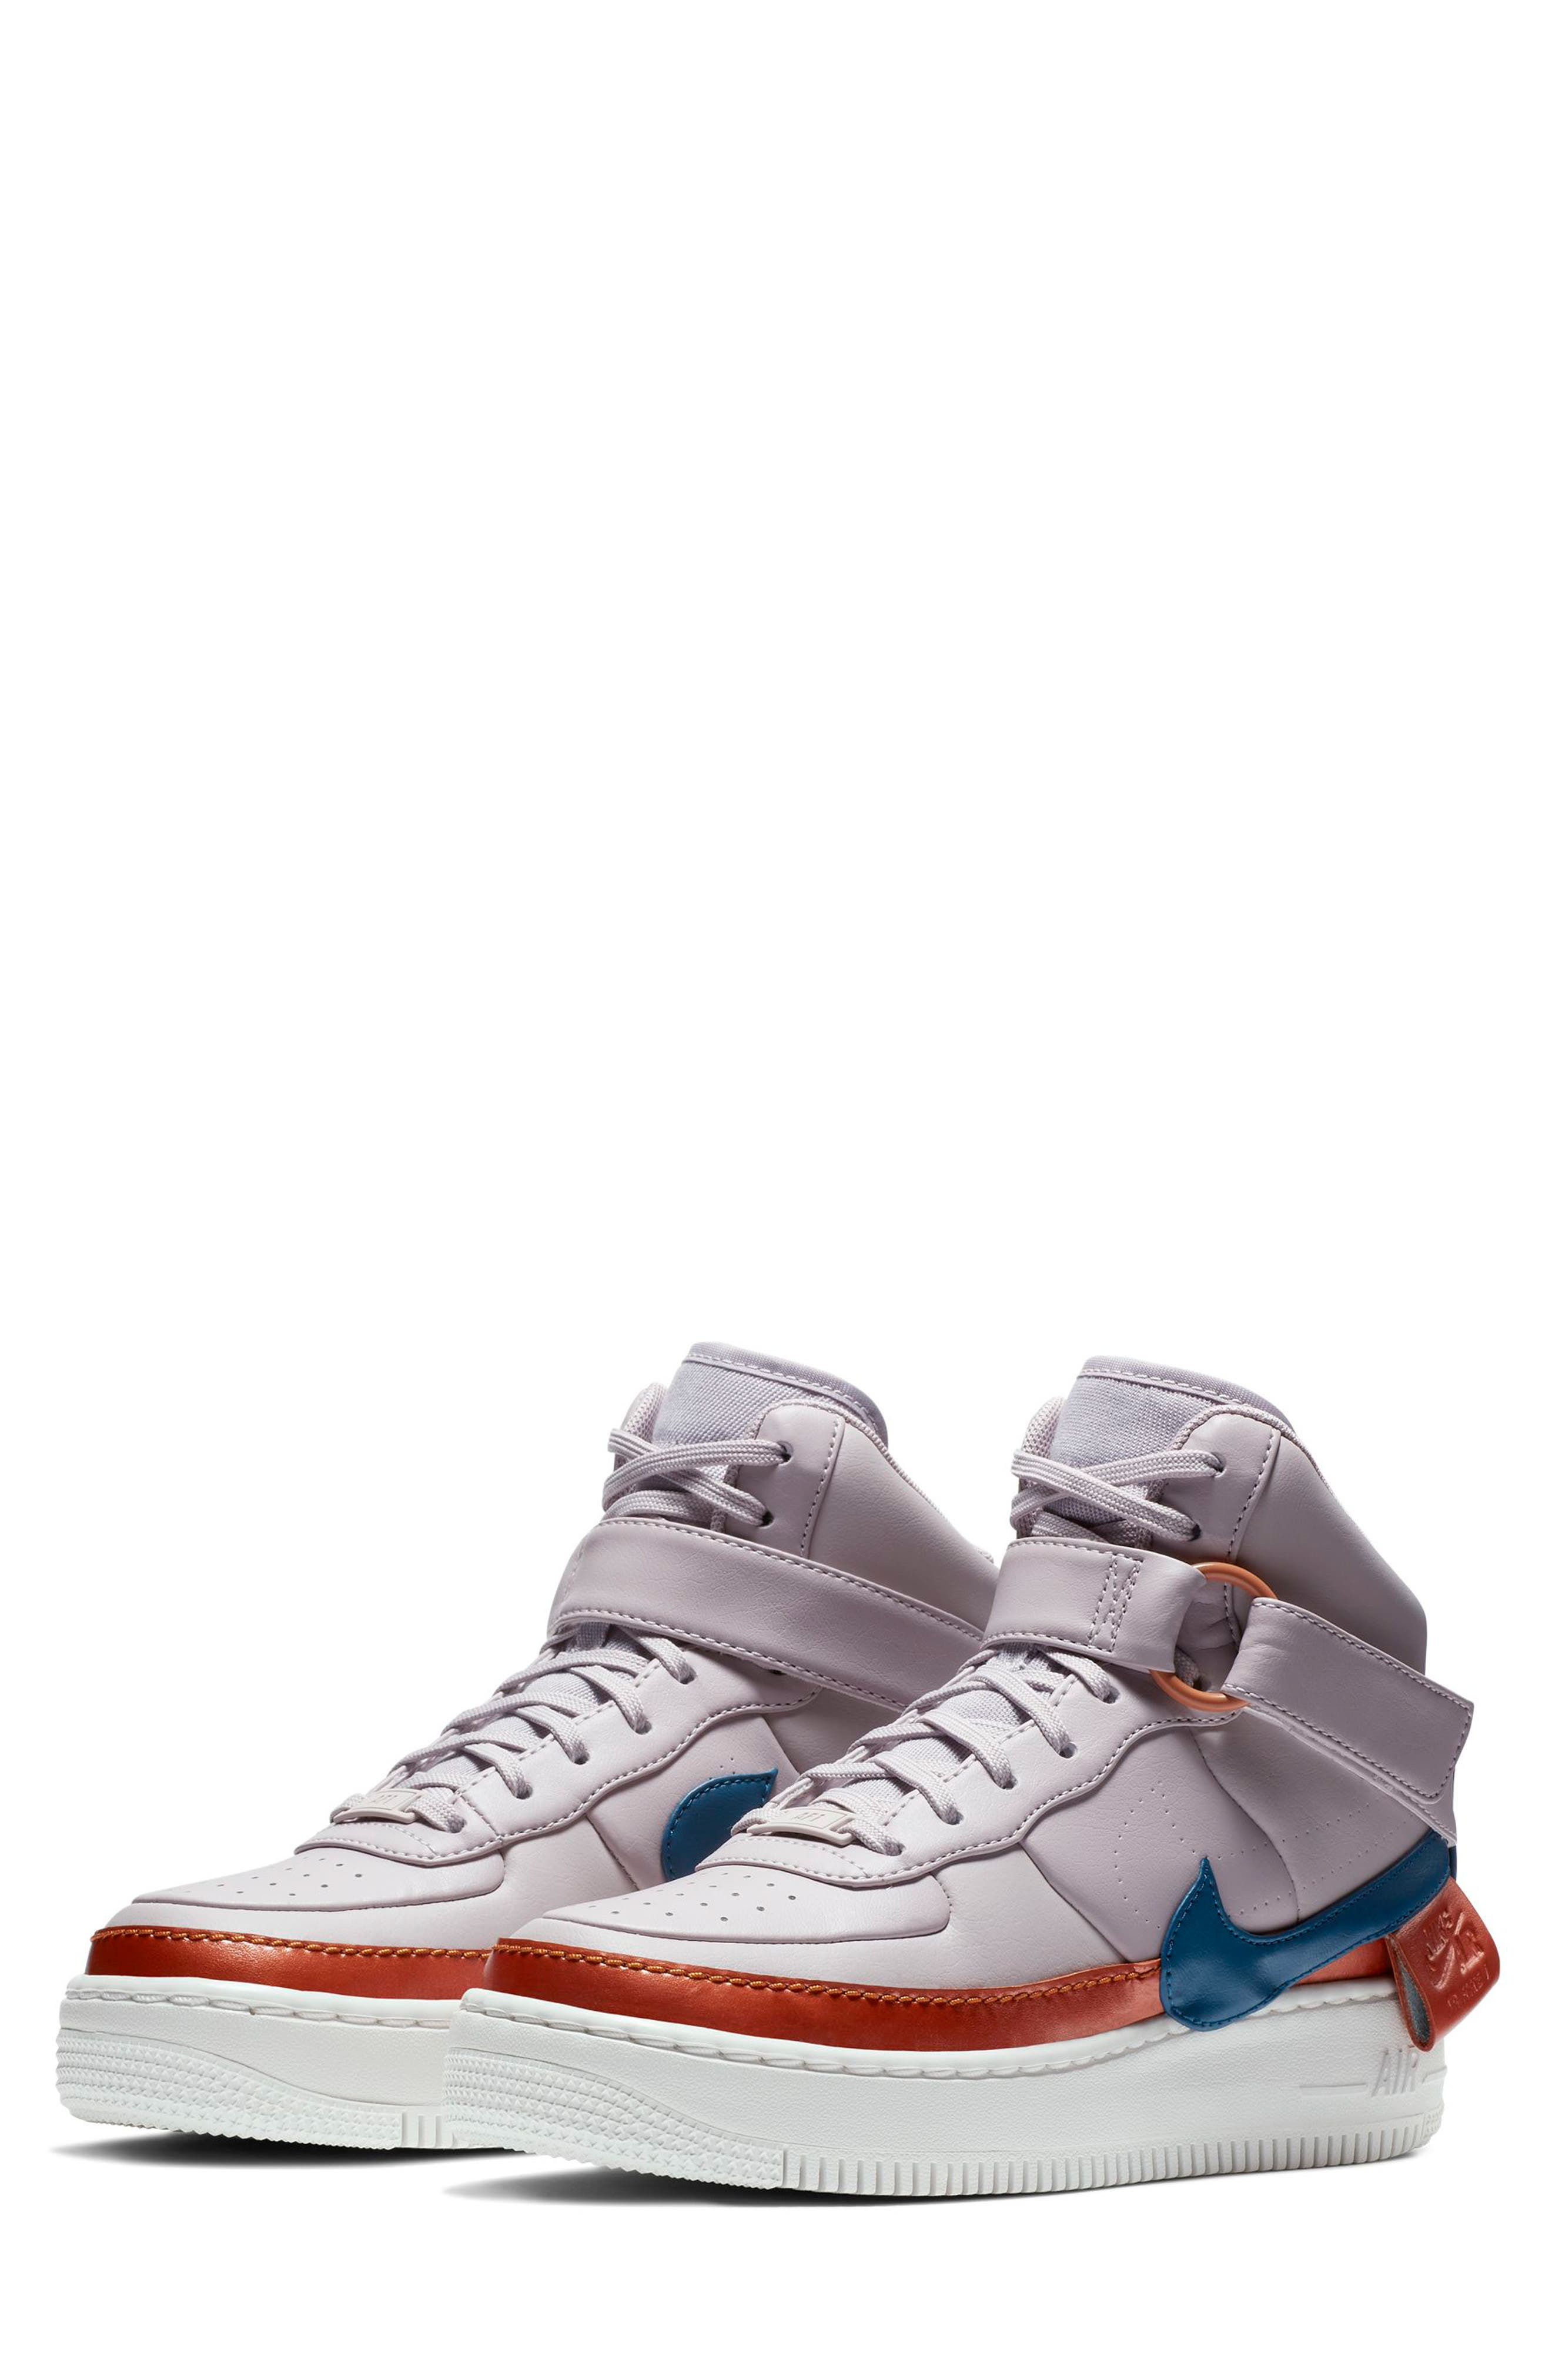 NIKE, Air Force 1 Jester High XX Sneaker, Main thumbnail 1, color, 500